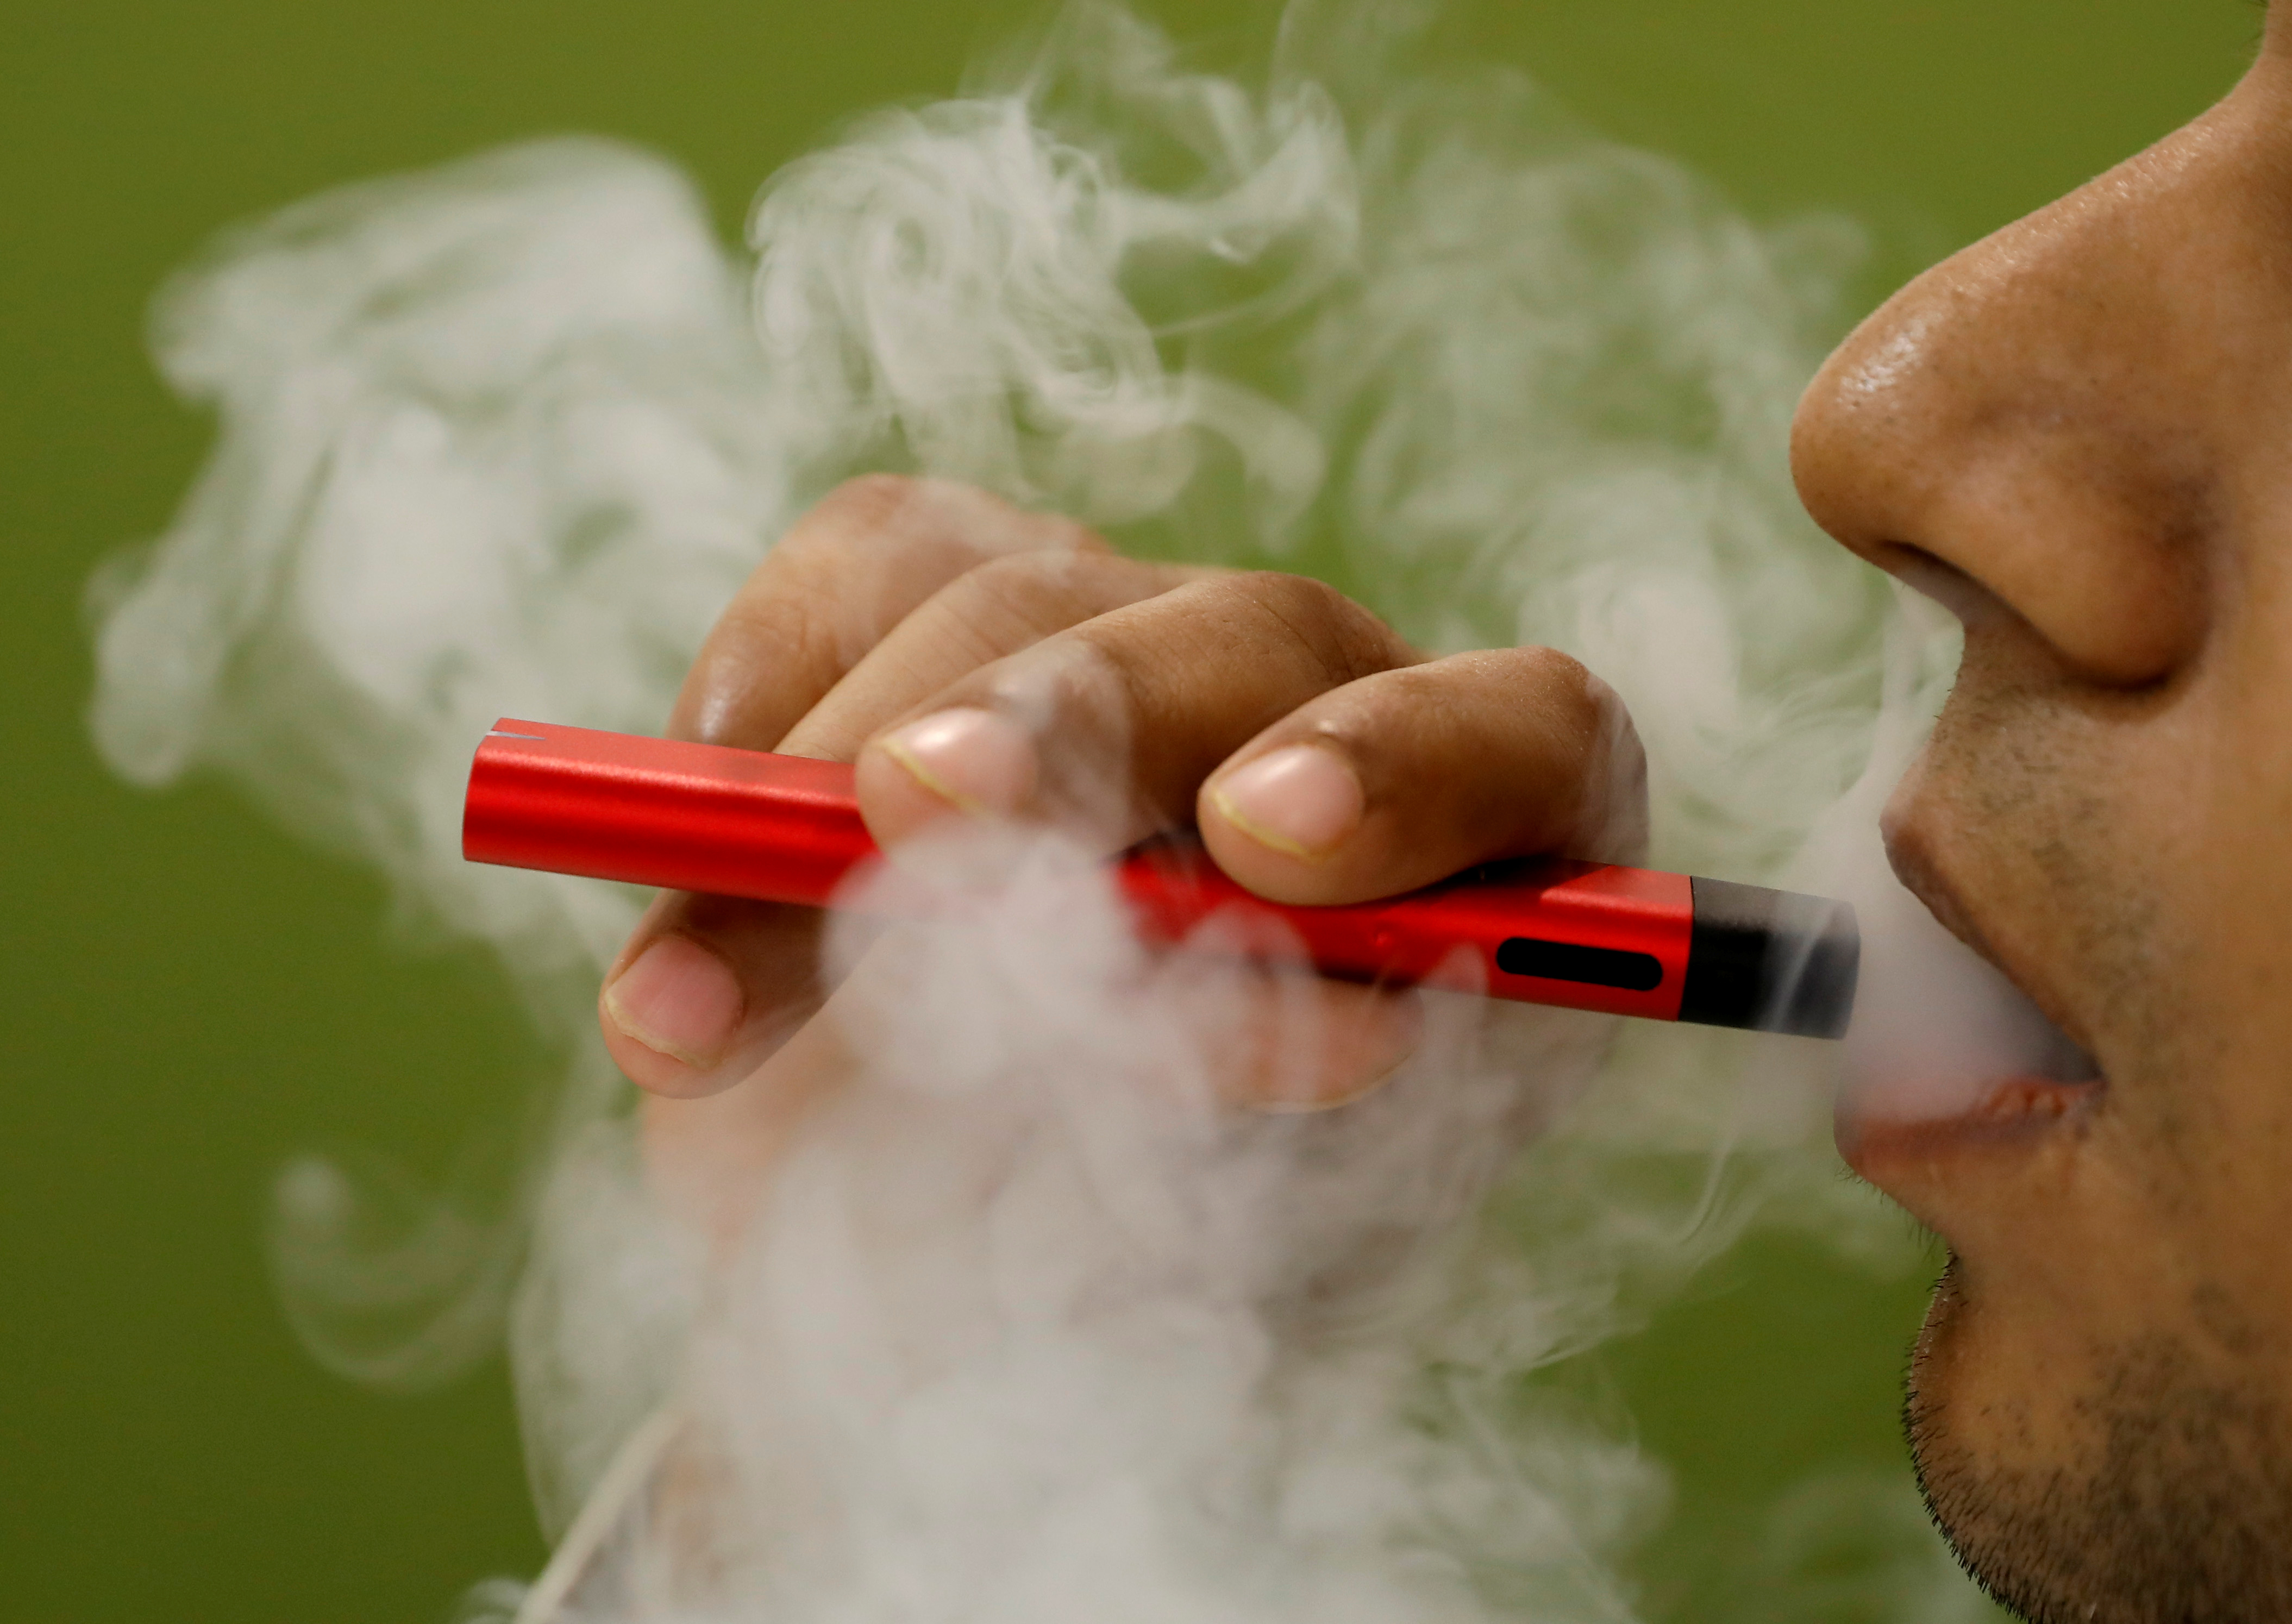 Flipkart, Amazon, others rush to pull vaping devices after India ban